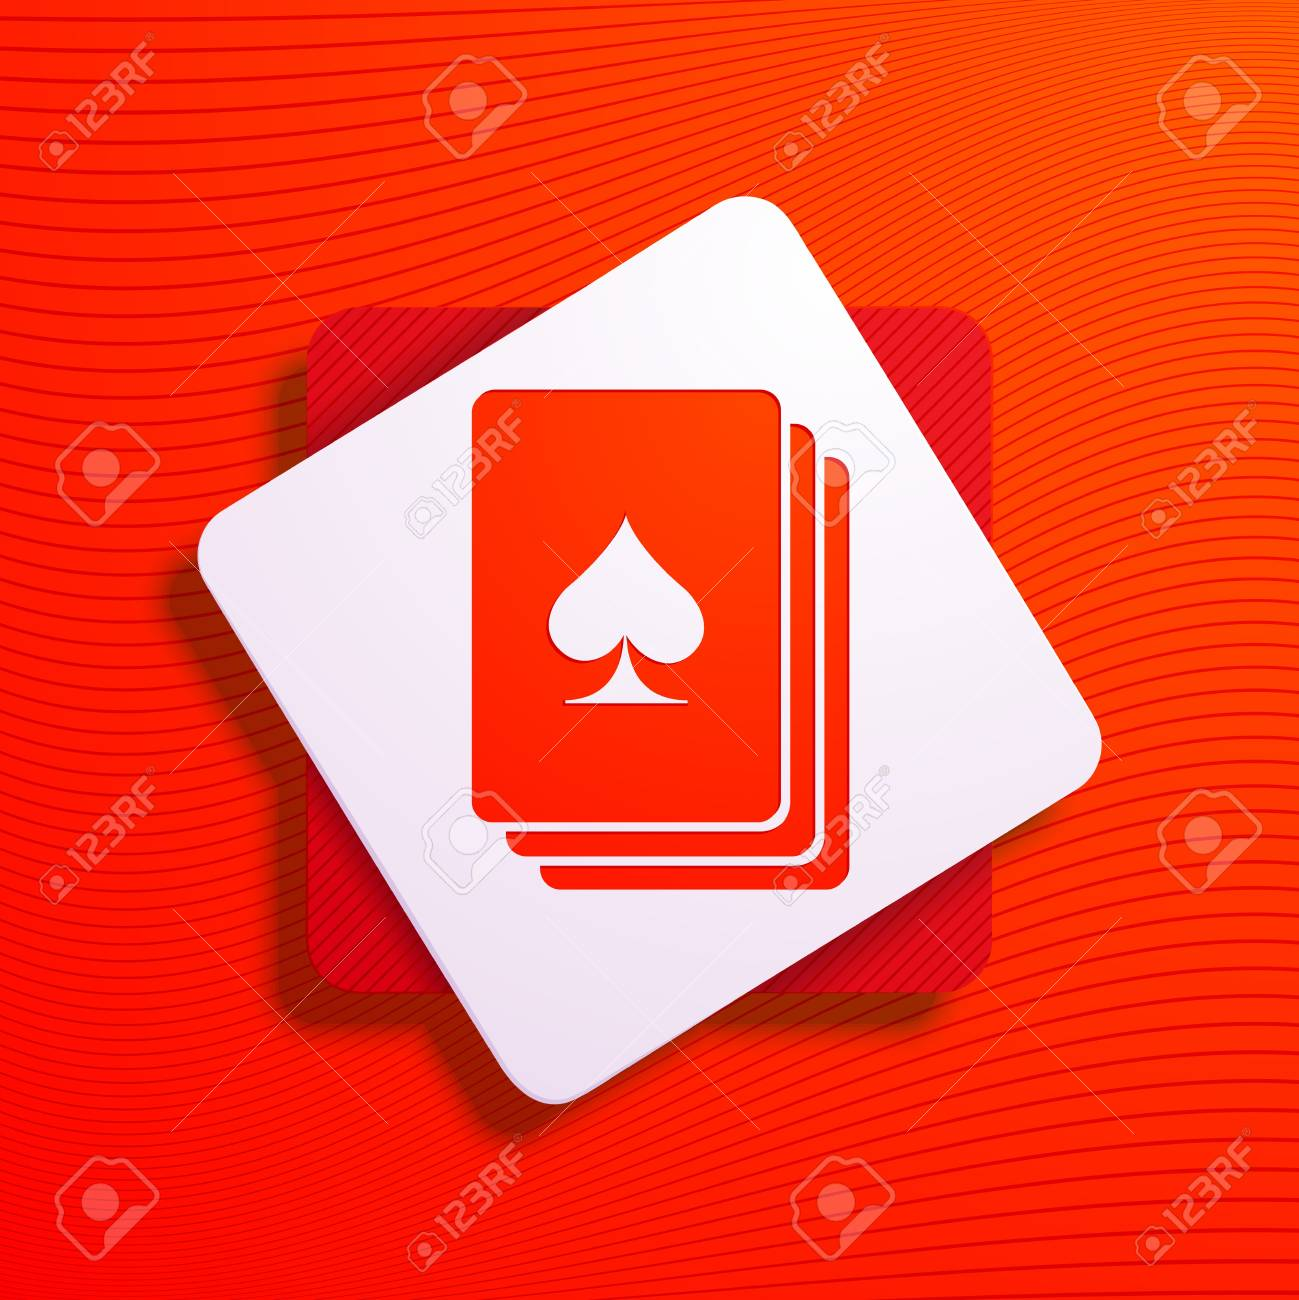 Vector illustration of a stylized playing card Stock Vector - 19715957